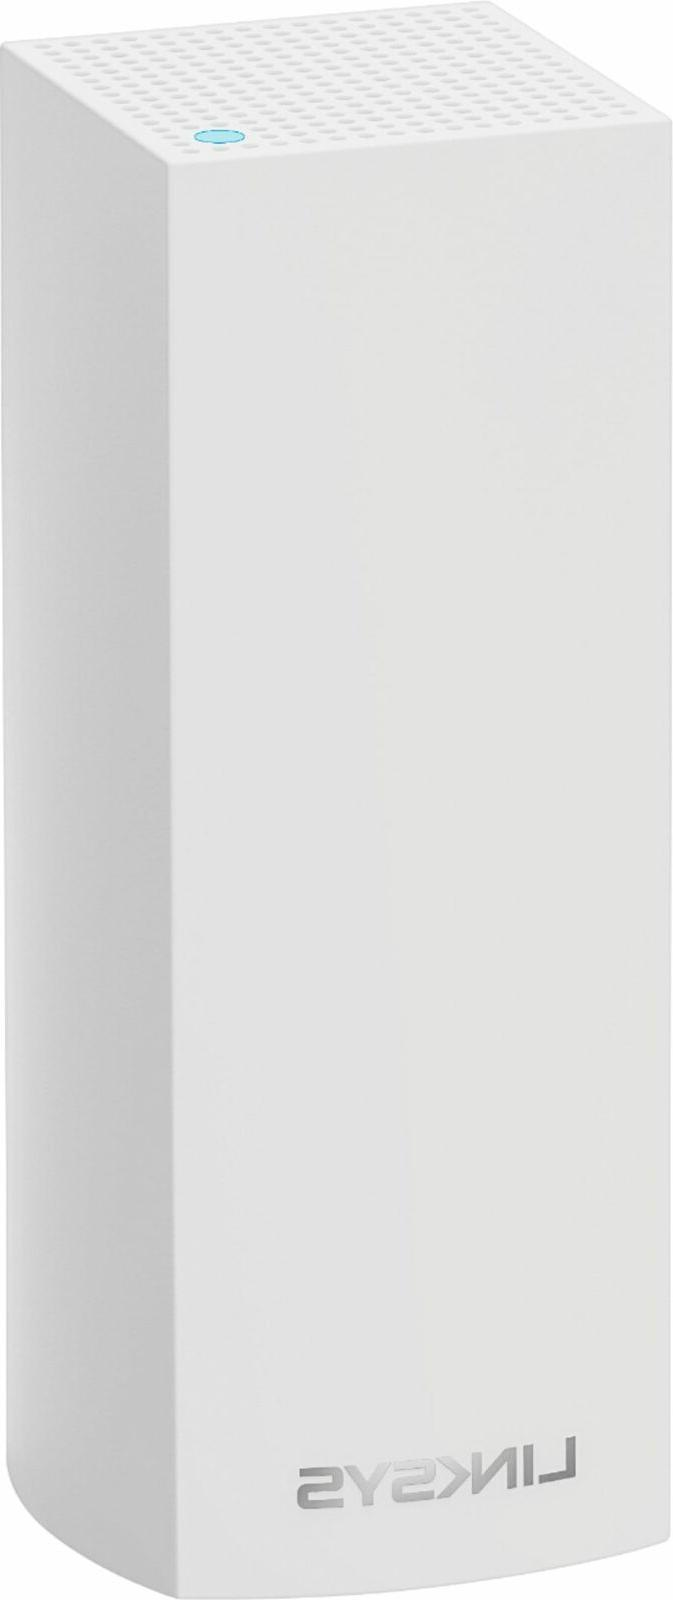 Linksys Velop Home Mesh Wi-Fi System